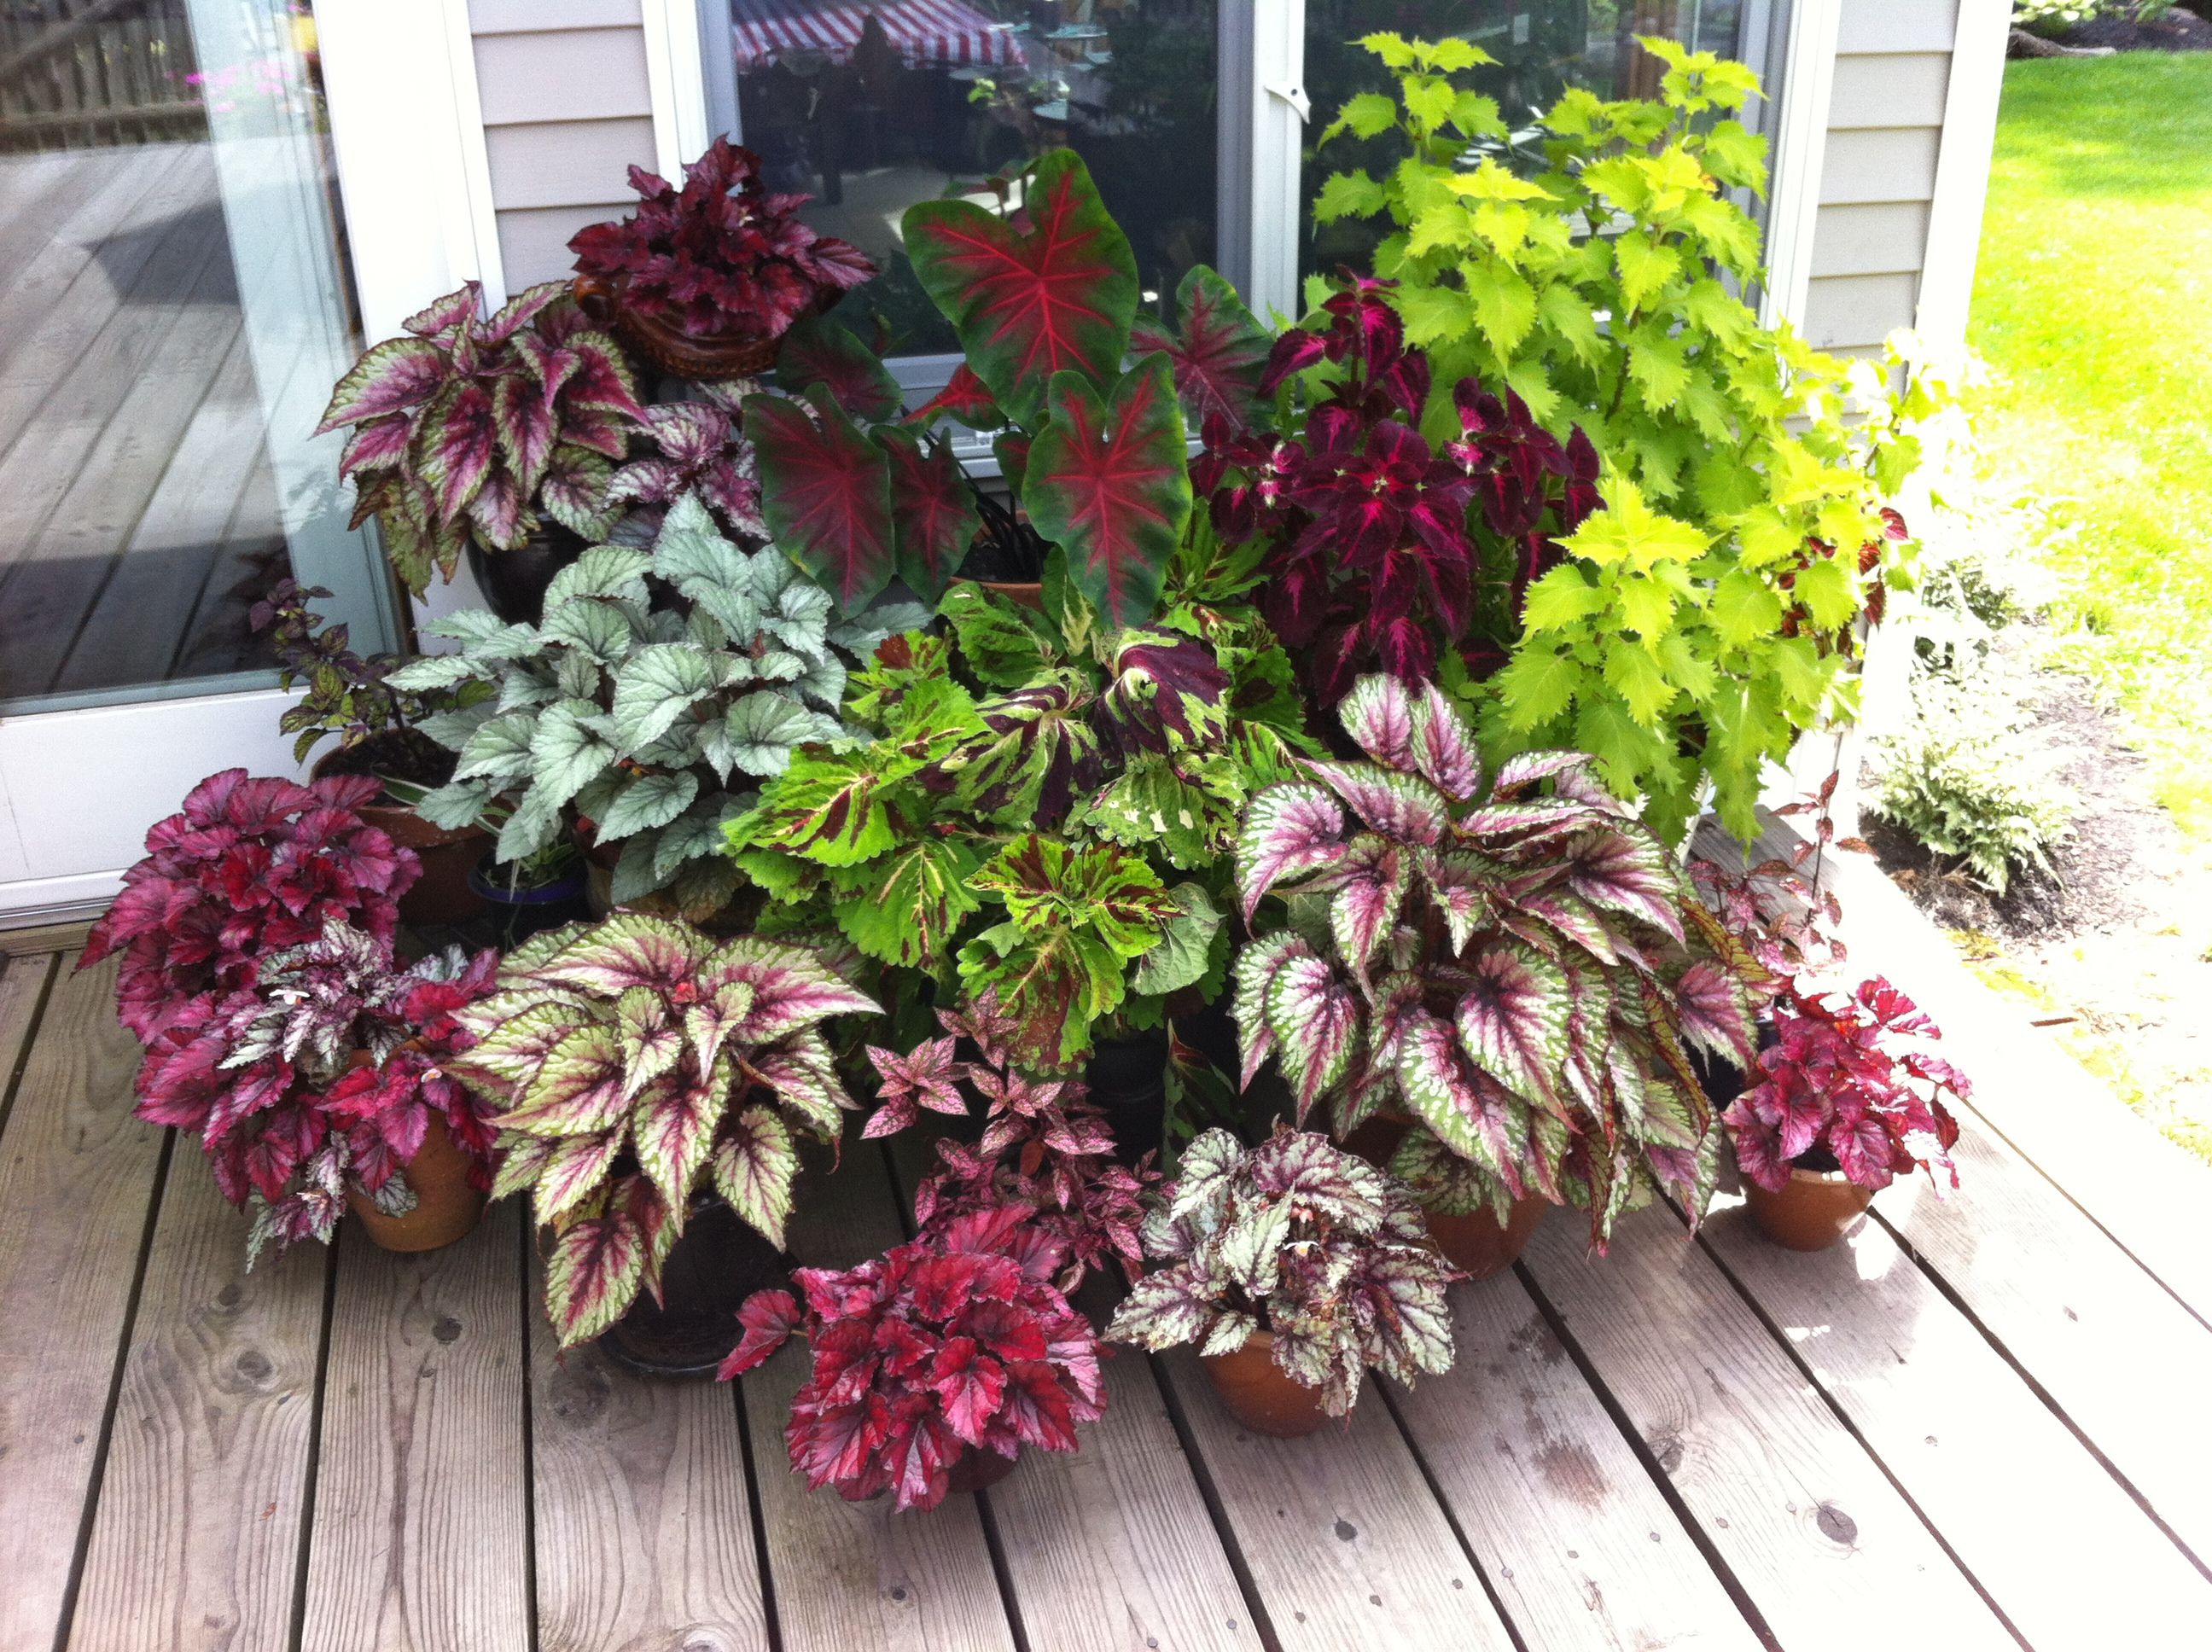 Shade Lovers Coleus Rex Begonia And Caladium Lol This Is What I Do Too Front Yard Landscaping Design Front Yard Landscaping Yard Landscaping